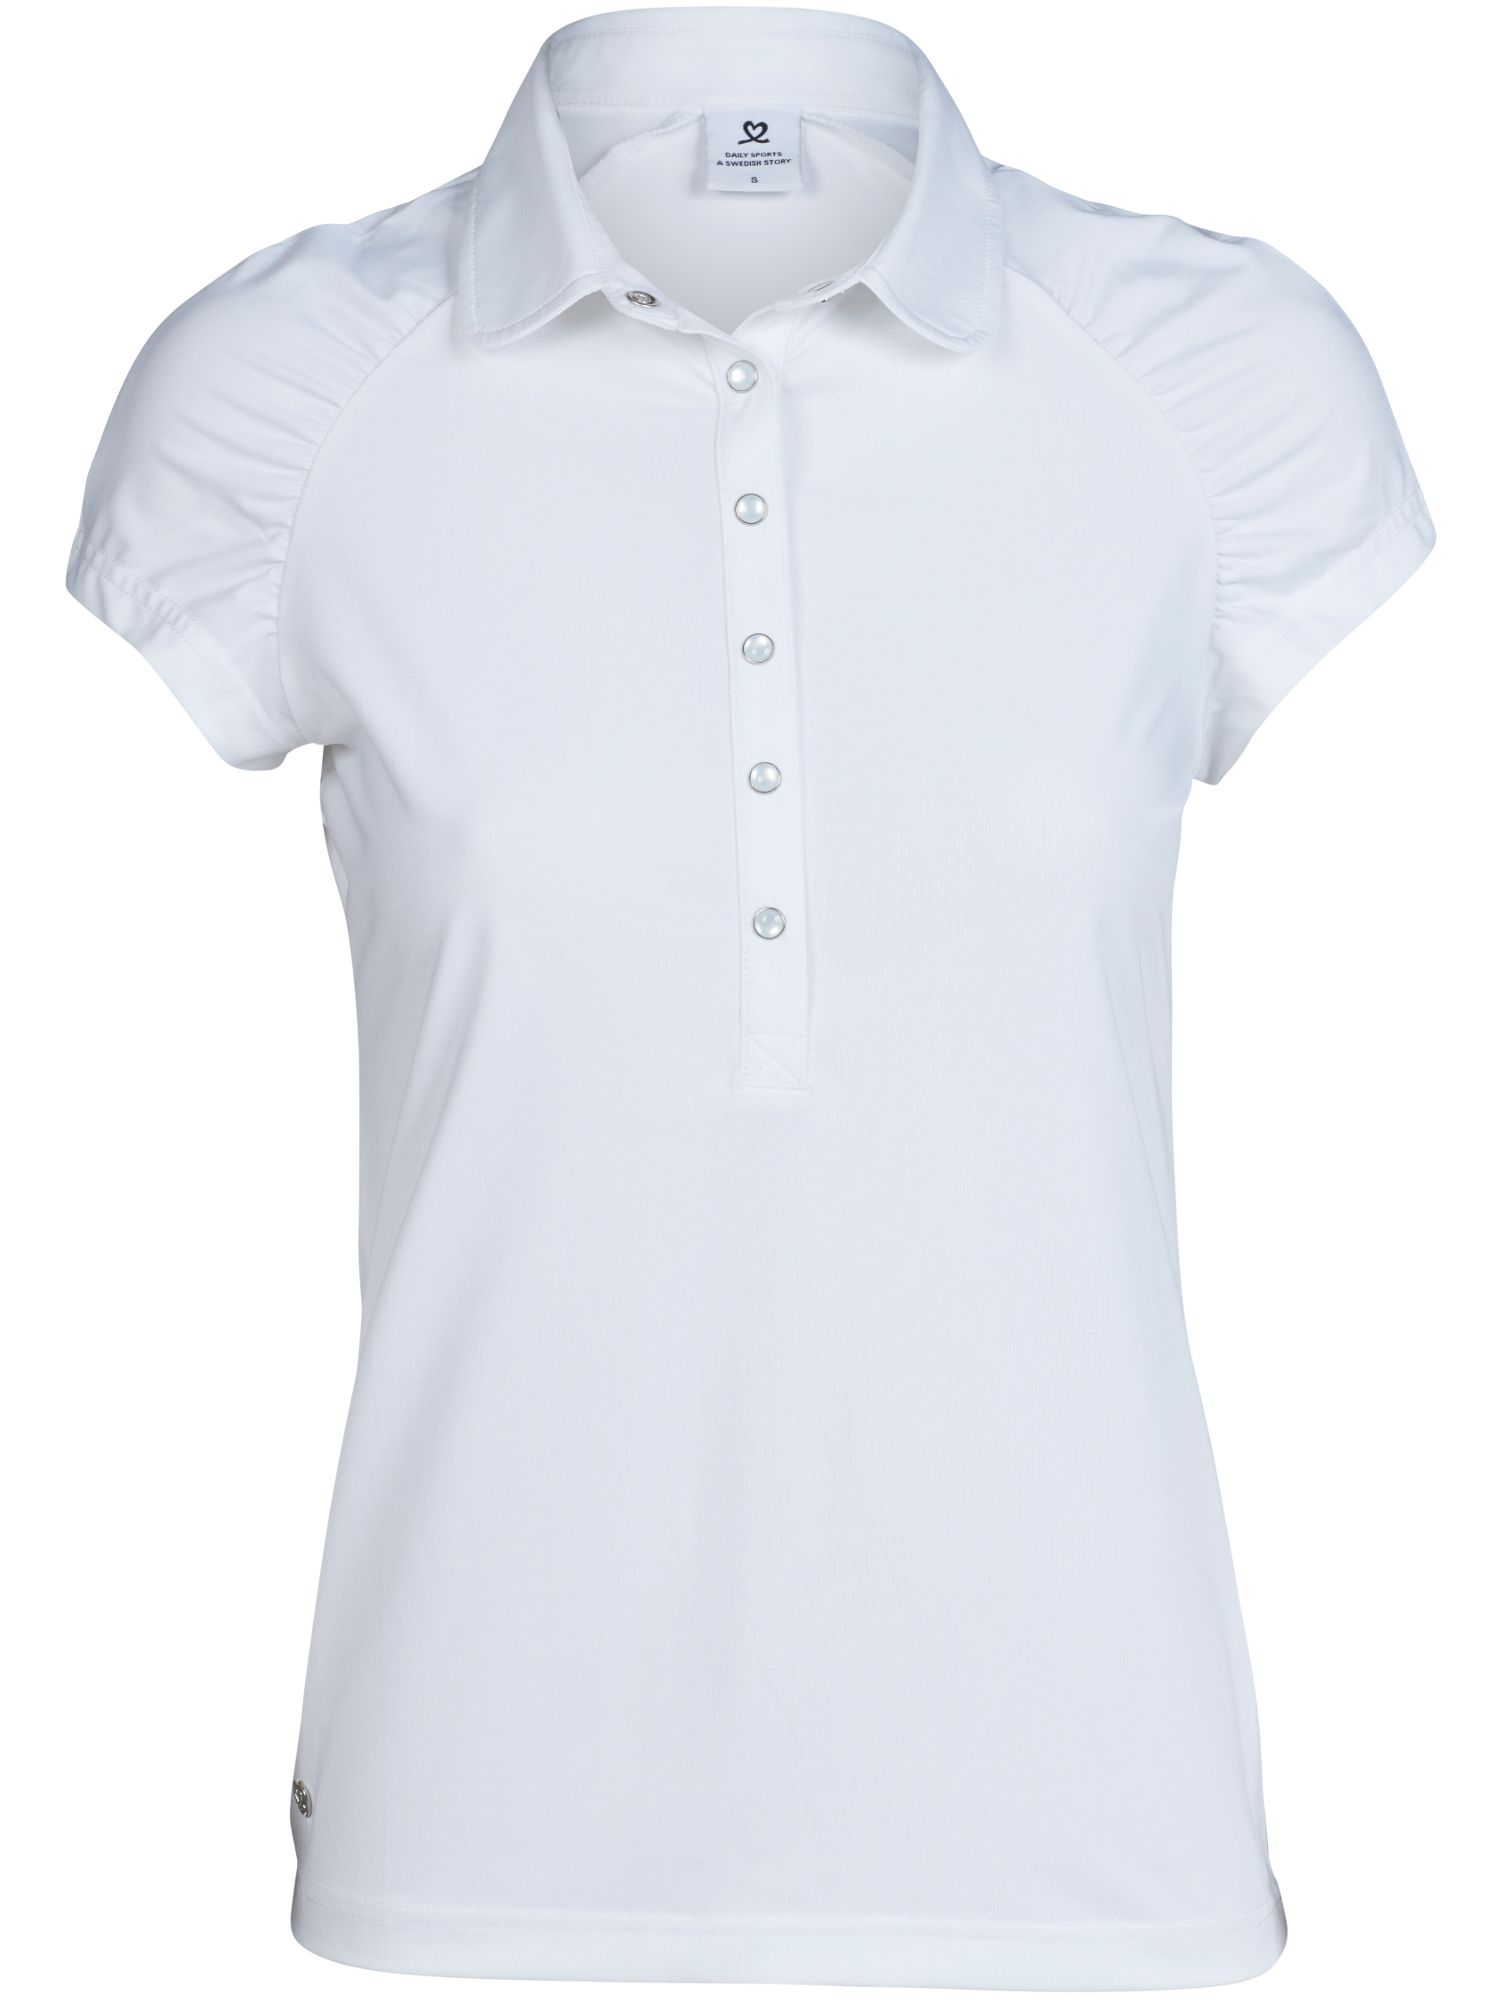 Daily Sports Ariana Cap Sleeve Polo Shirt, White